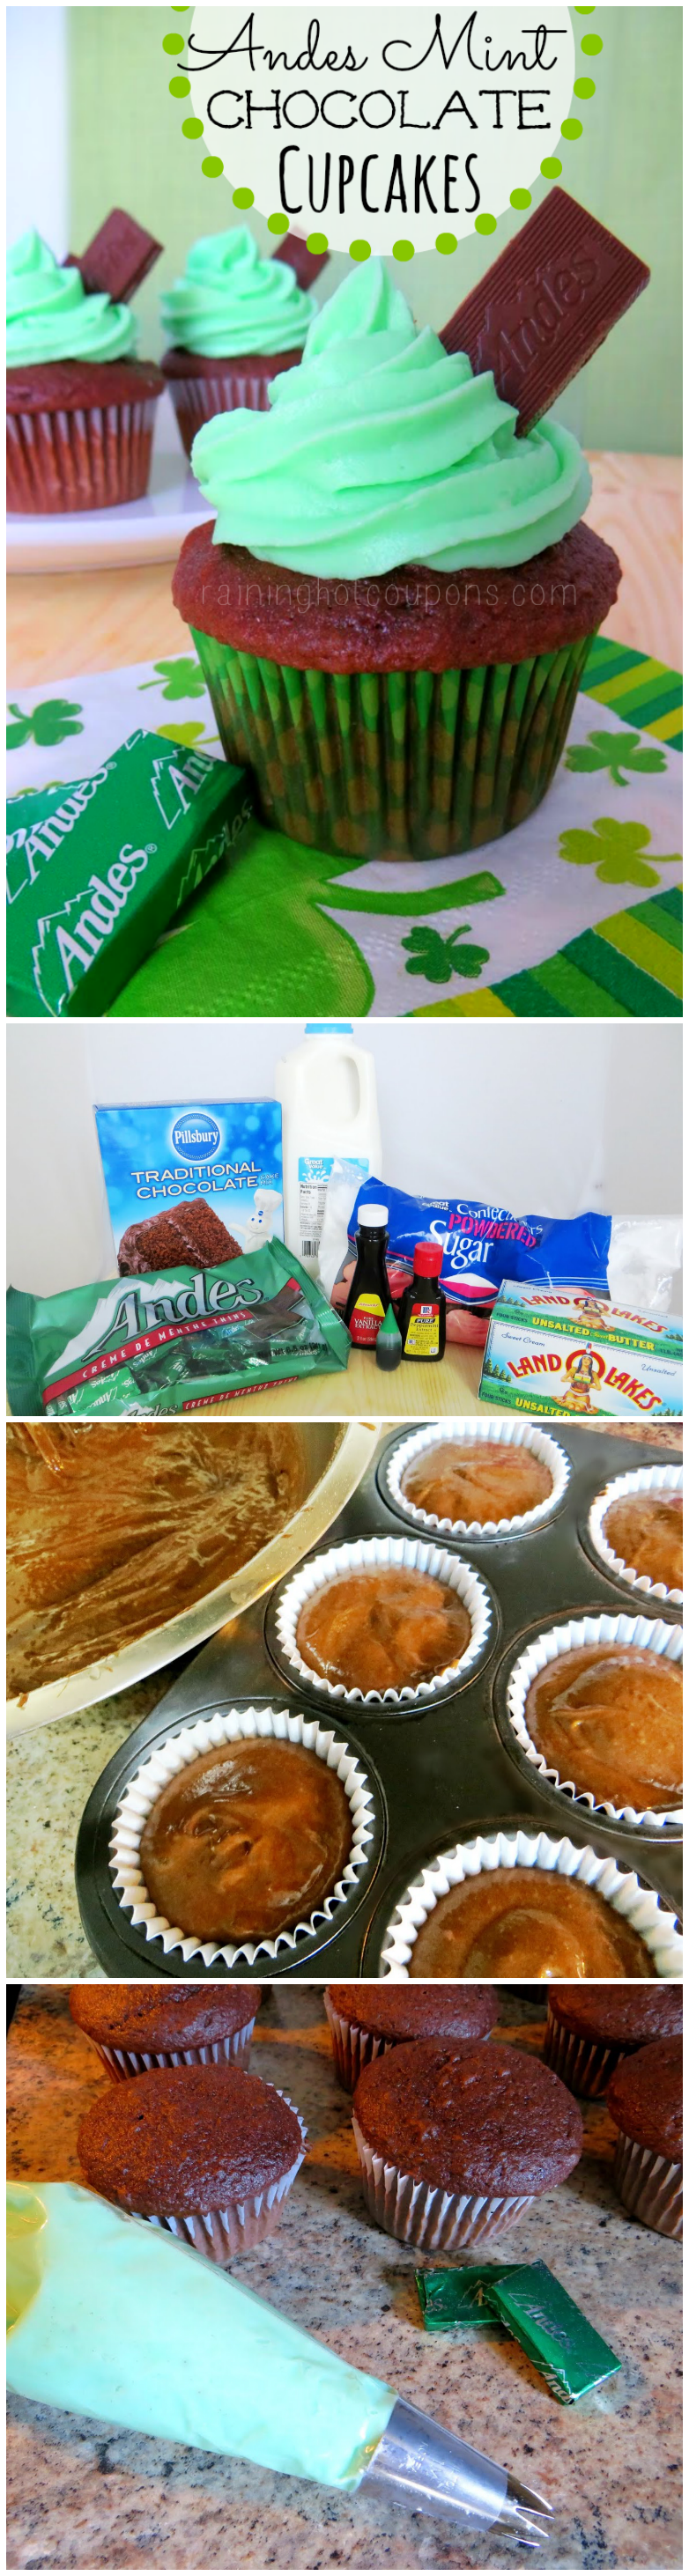 andes mint cupcakes collage.png